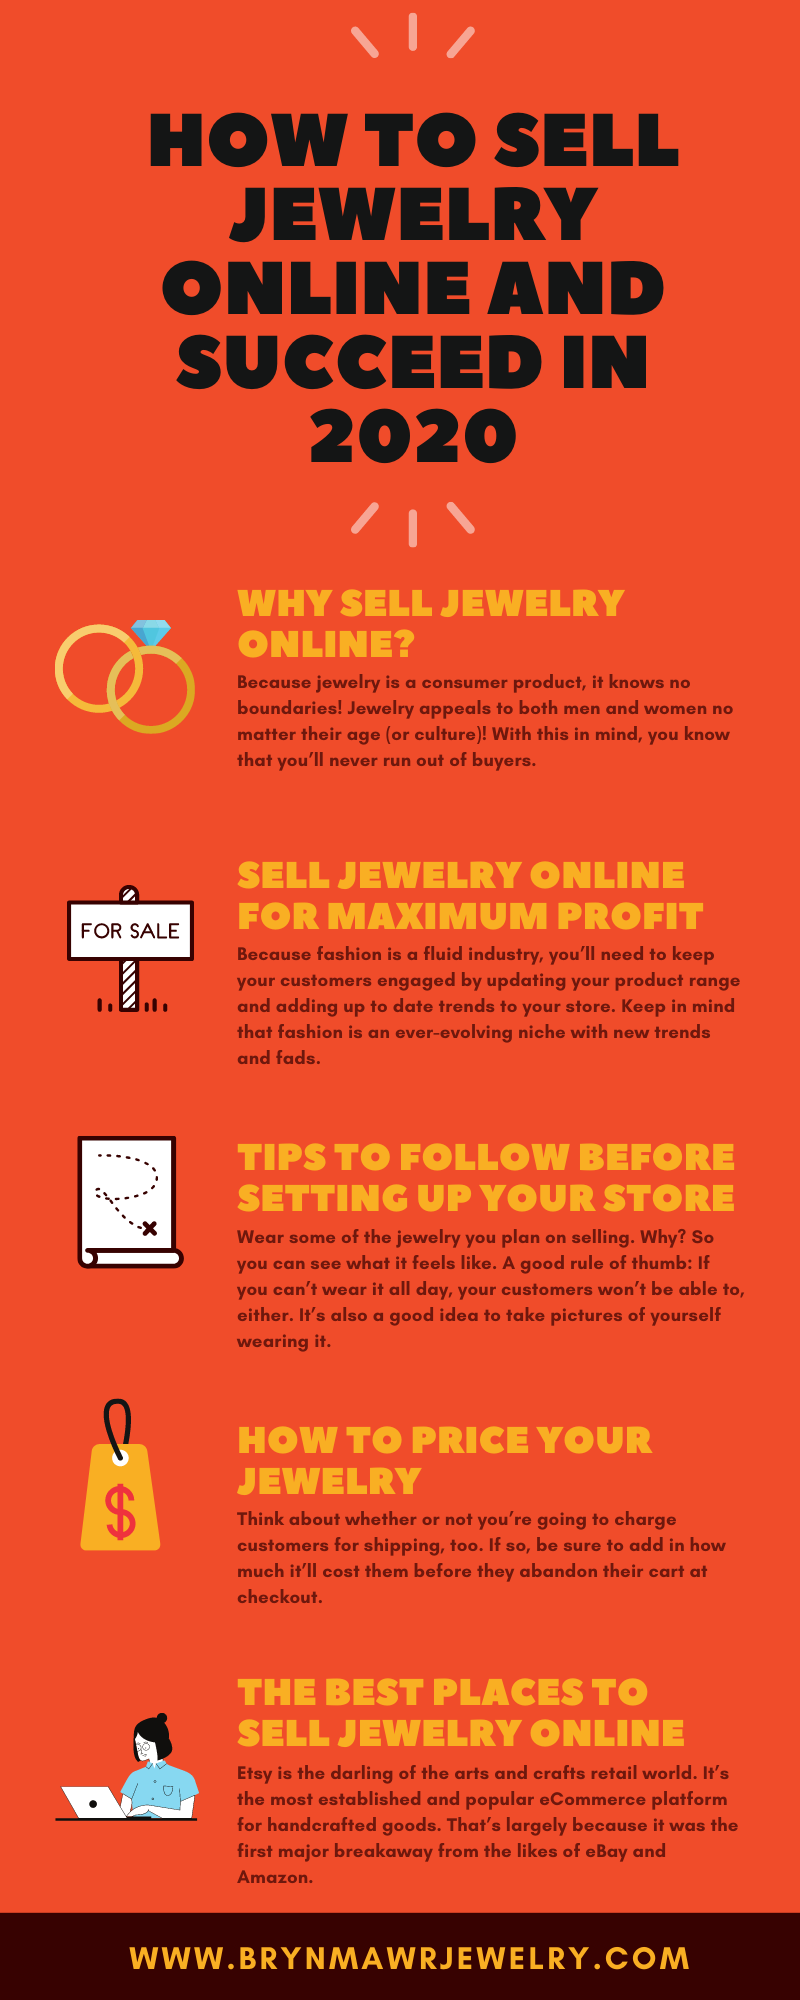 16+ How do i sell jewelry online viral